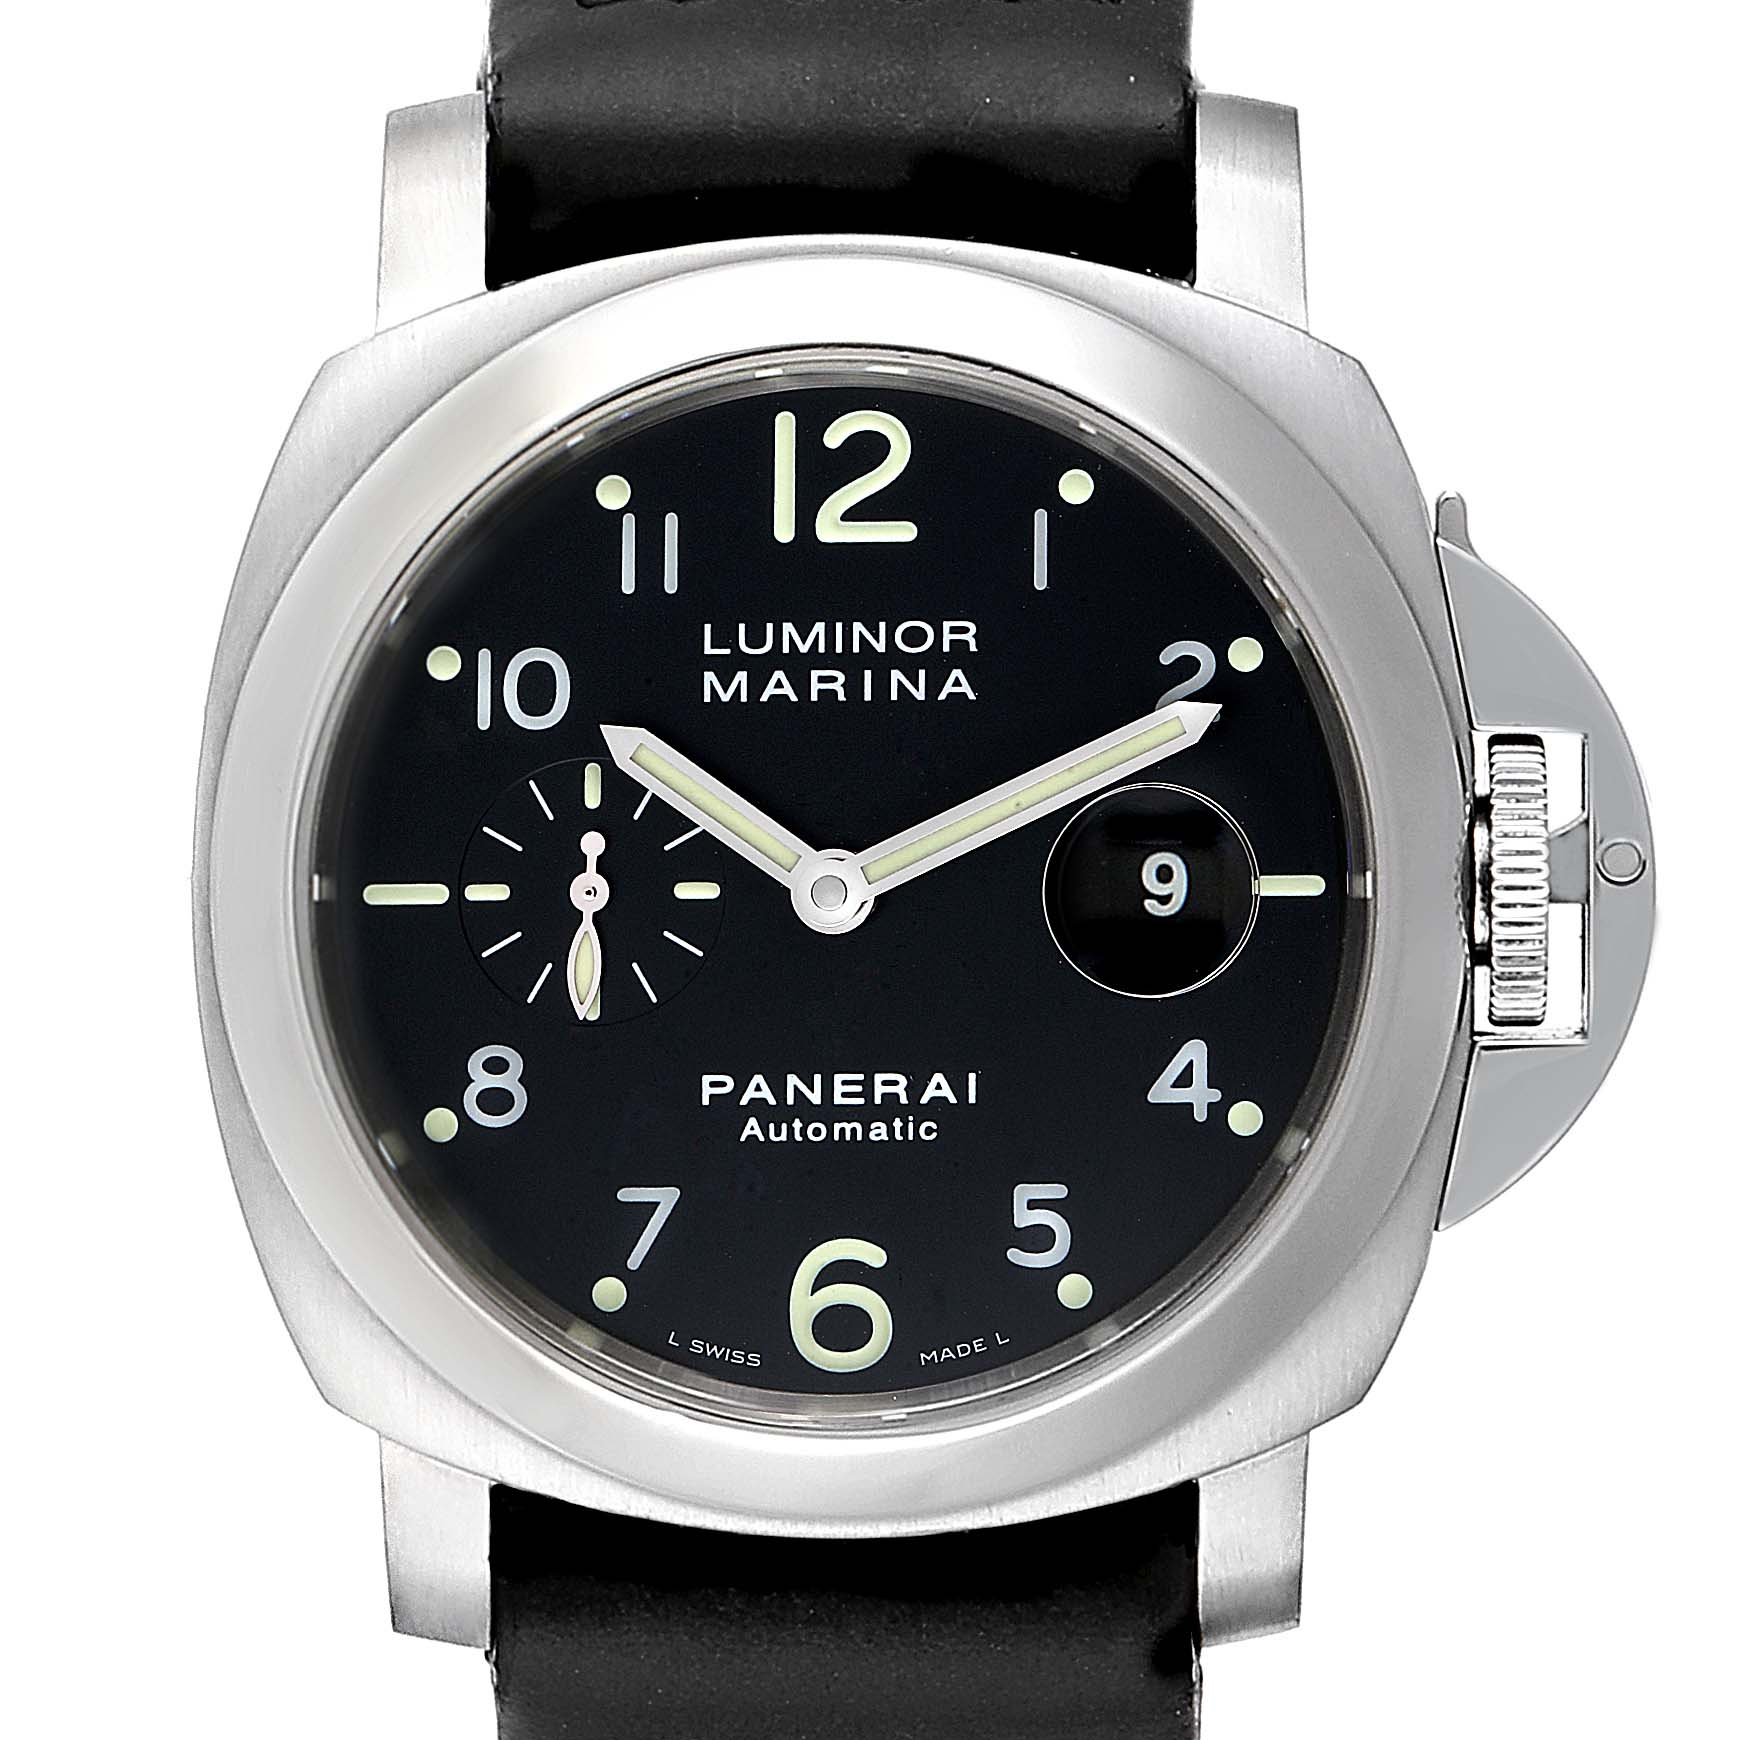 Panerai Luminor Marina 44mm Automatic Watch PAM00164 PAM164 Box Card